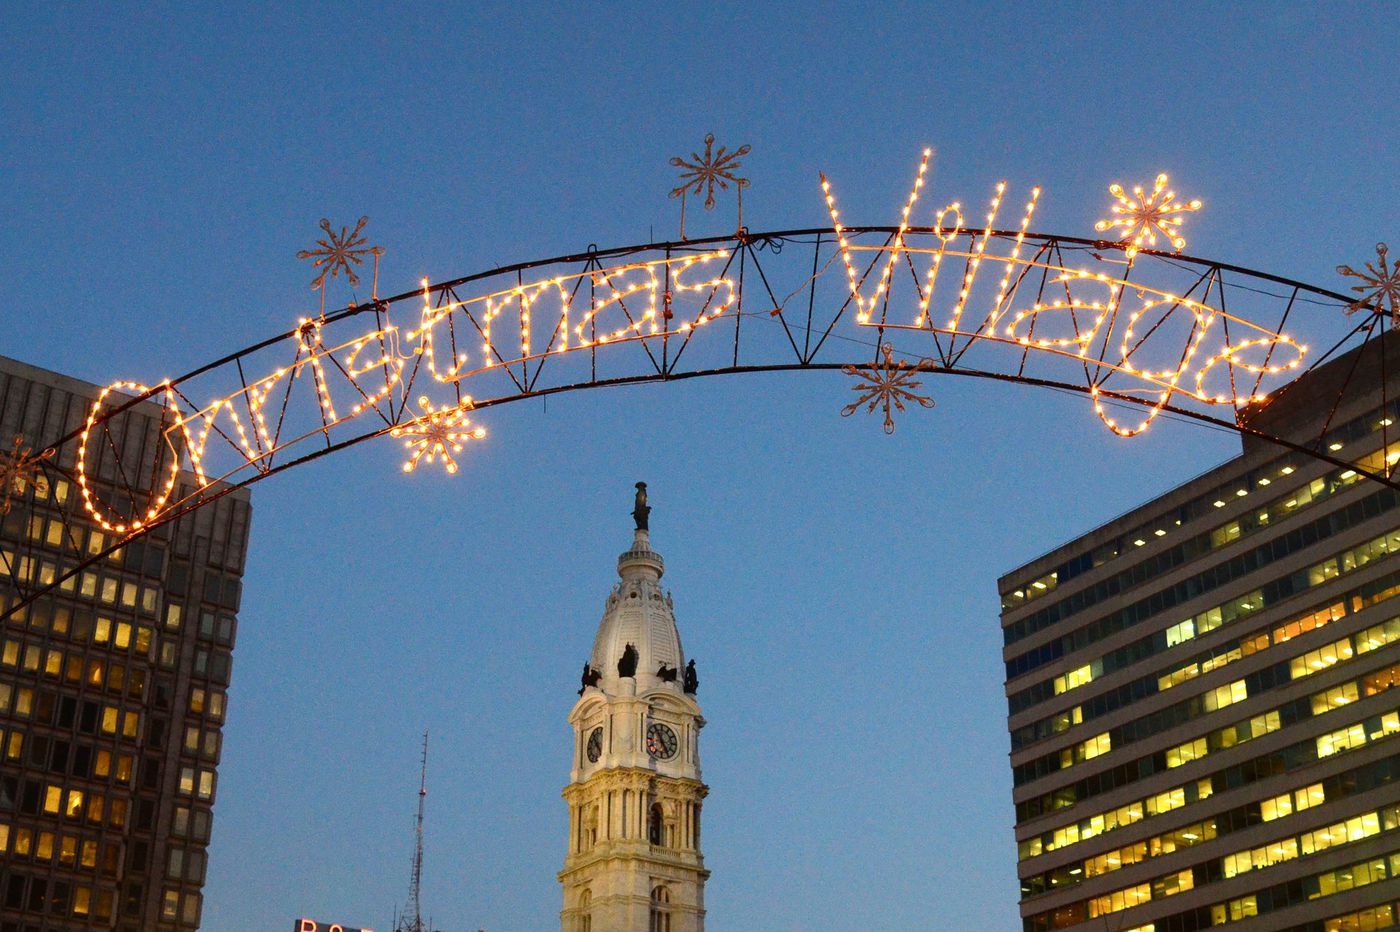 Christmas Village Preview Weekend, Philadelphia Marathon, Wild Lights, and other events around Philadelphia, Nov. 16-22